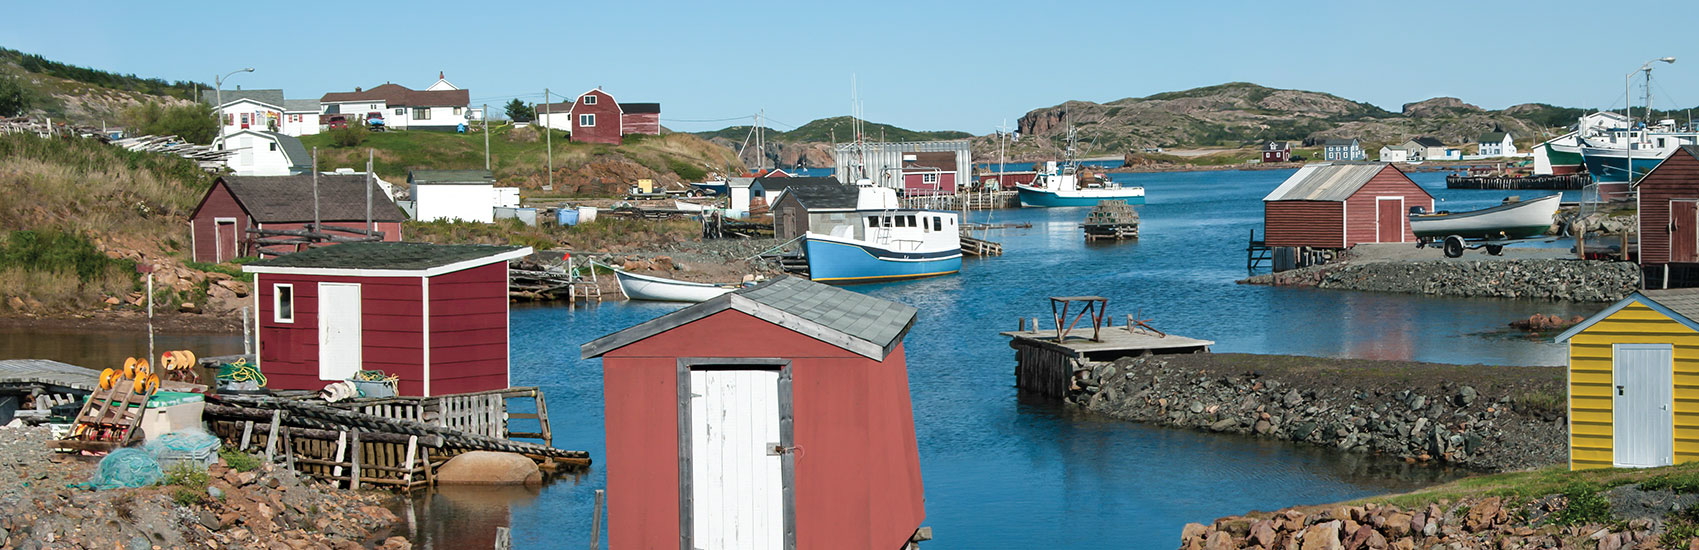 Scenery, History and Fun Await in Newfoundland